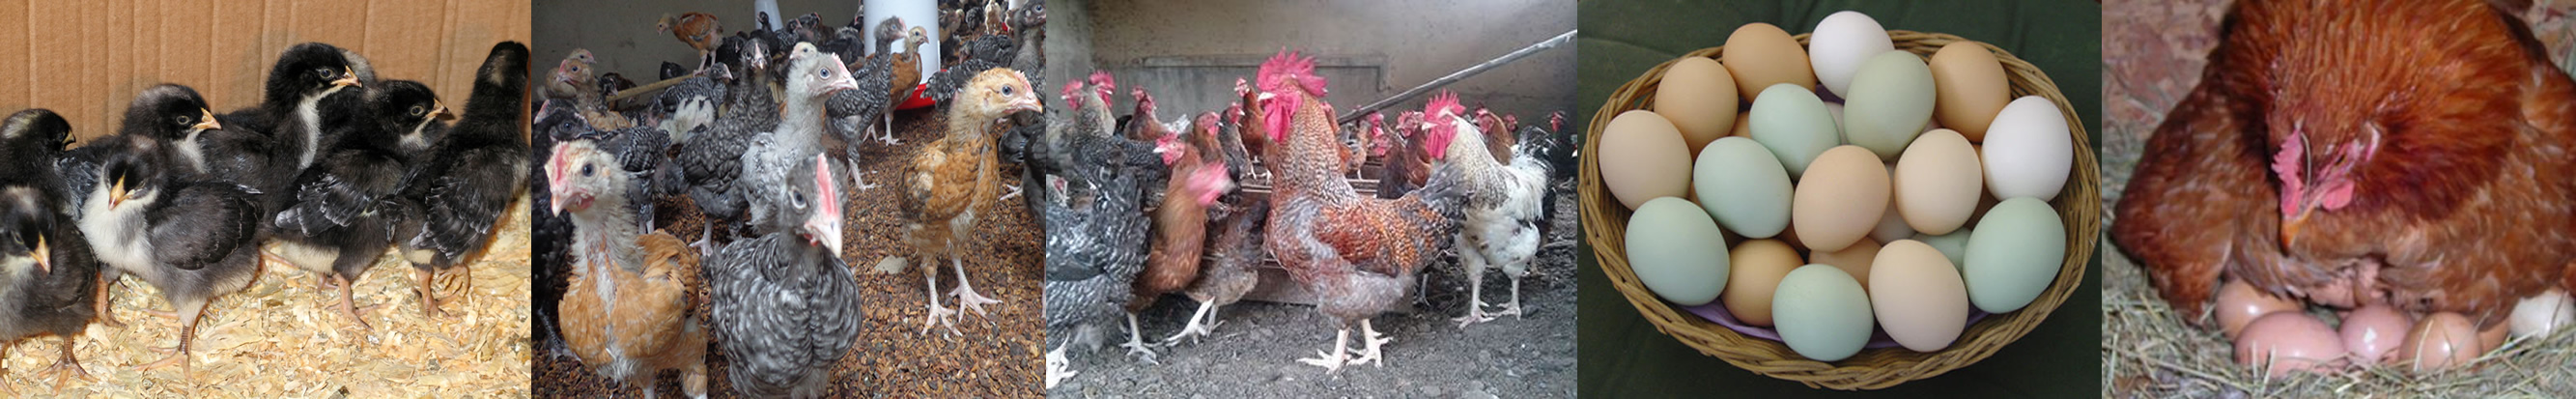 Ziwani Poultry Farming in Kenya - Ziwani poultry KARI, Kuroiler, Kienyeji chicks and fertile hatching eggs for sale to promote indigenous poultry farming in Kenya